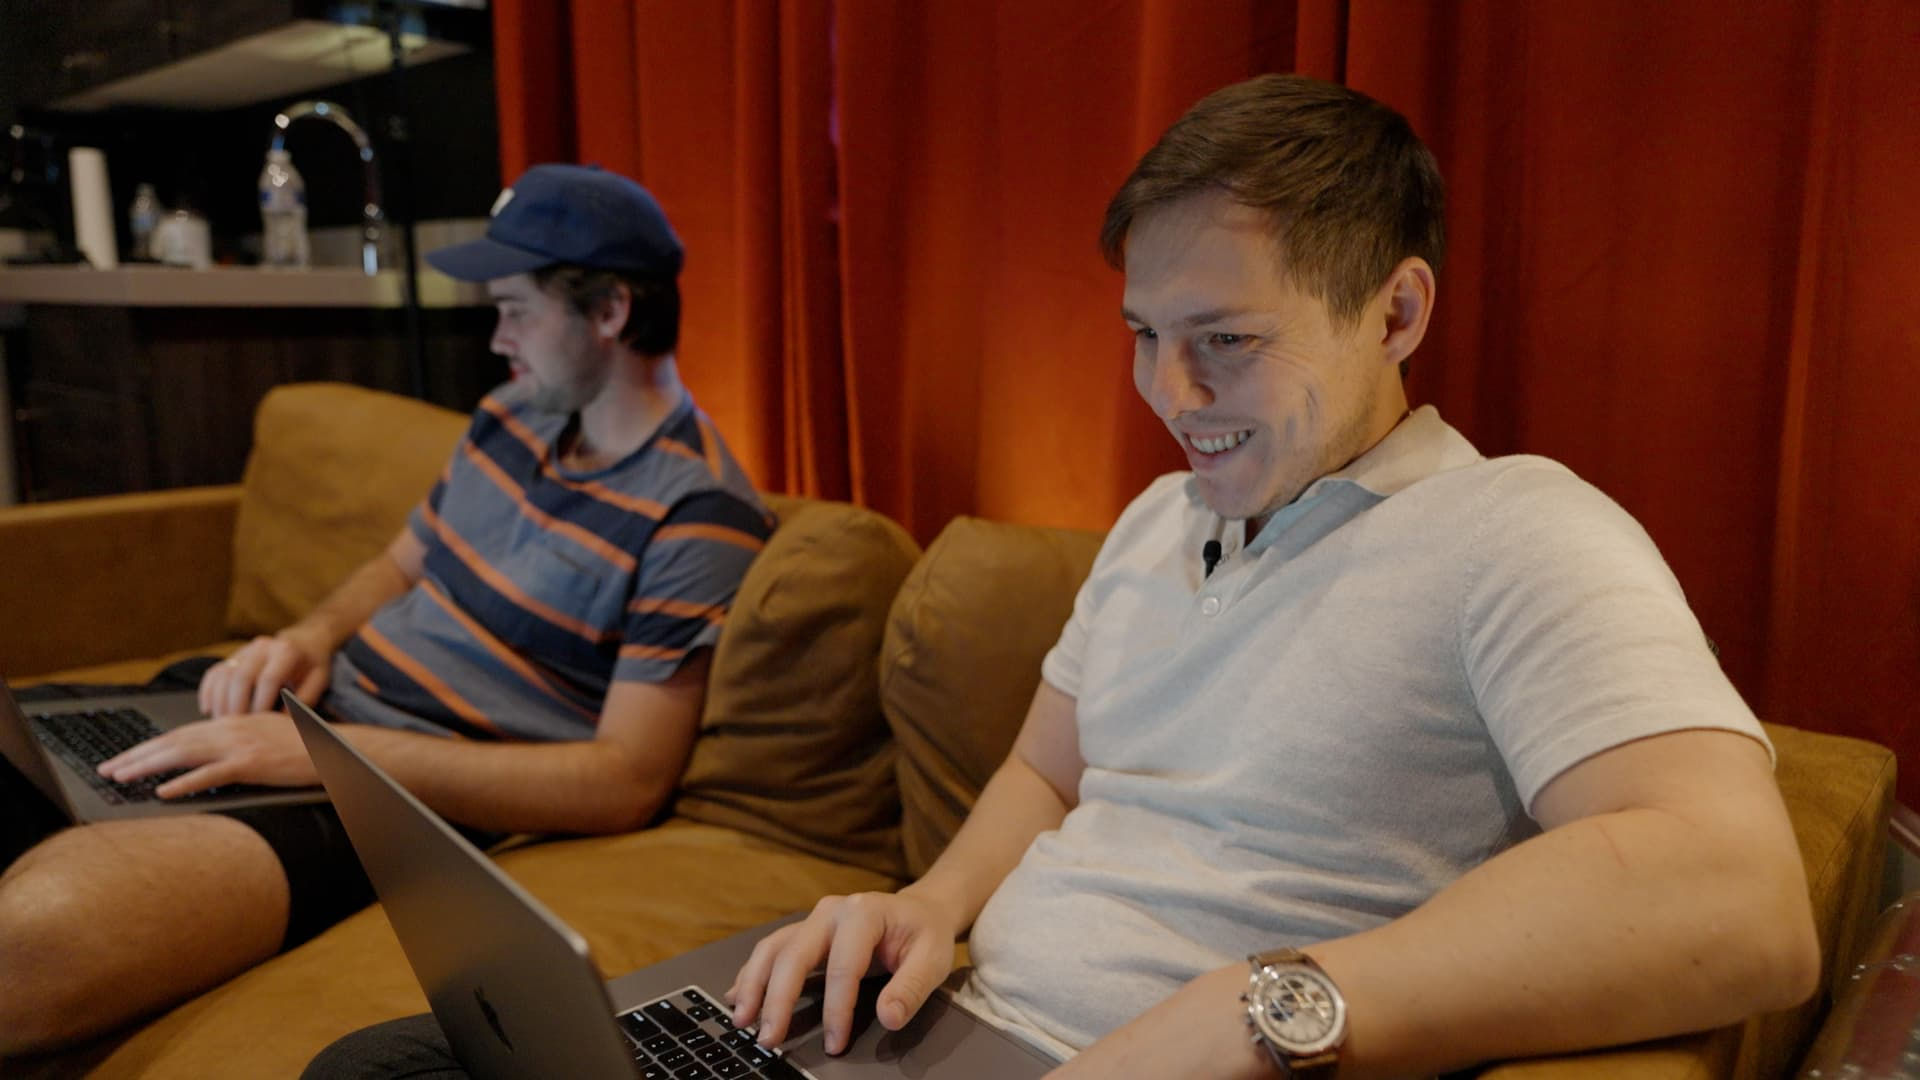 Stephan working with his editor, Jack, who also lives with him.